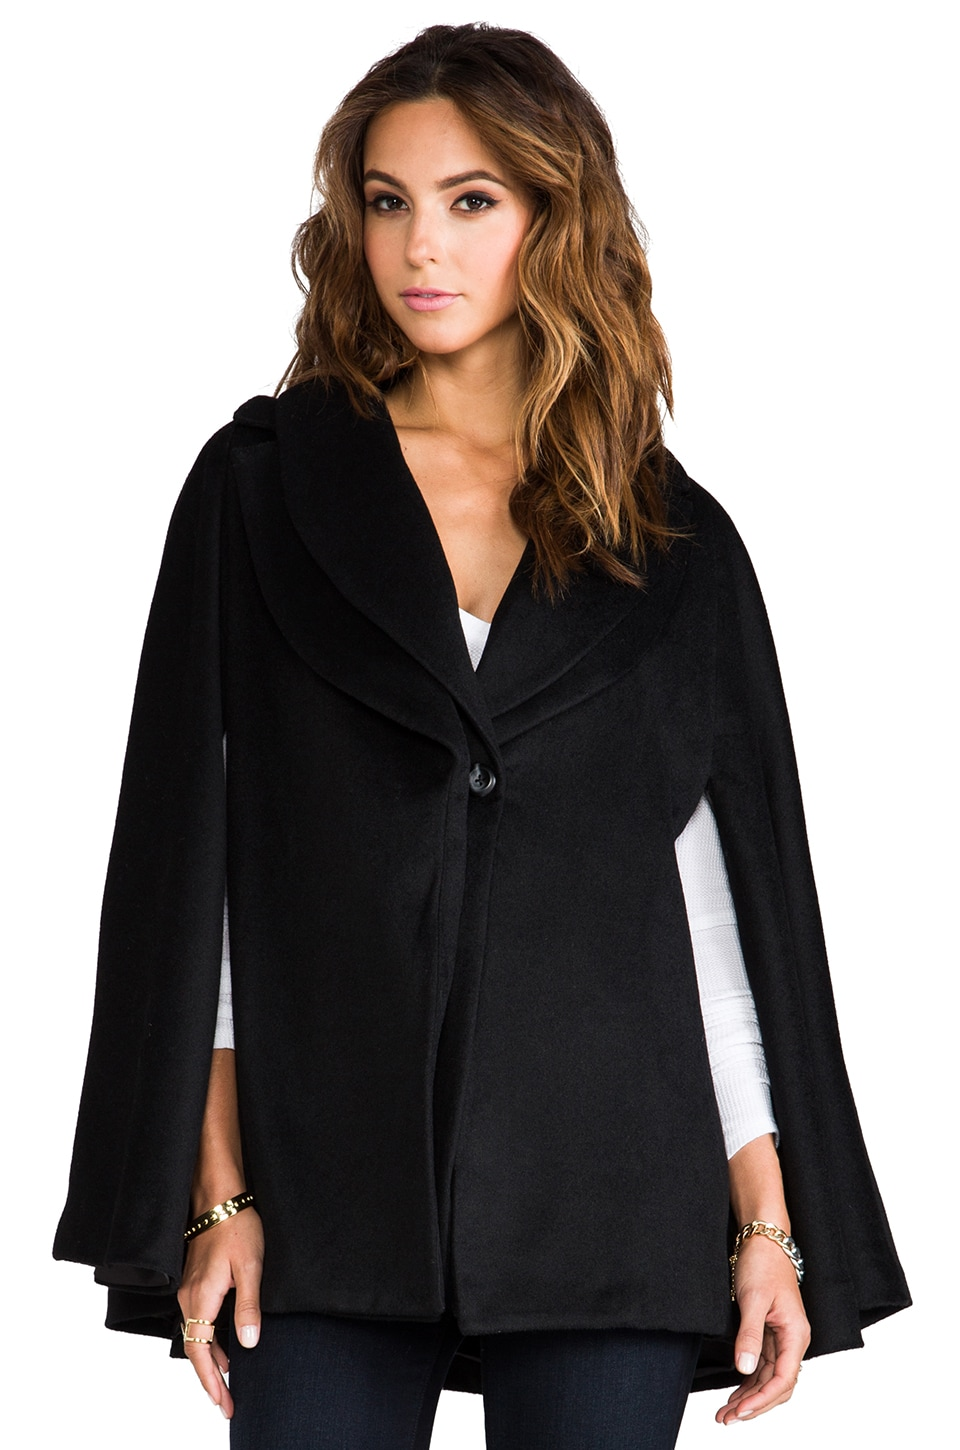 primary Akasha Cape in Black